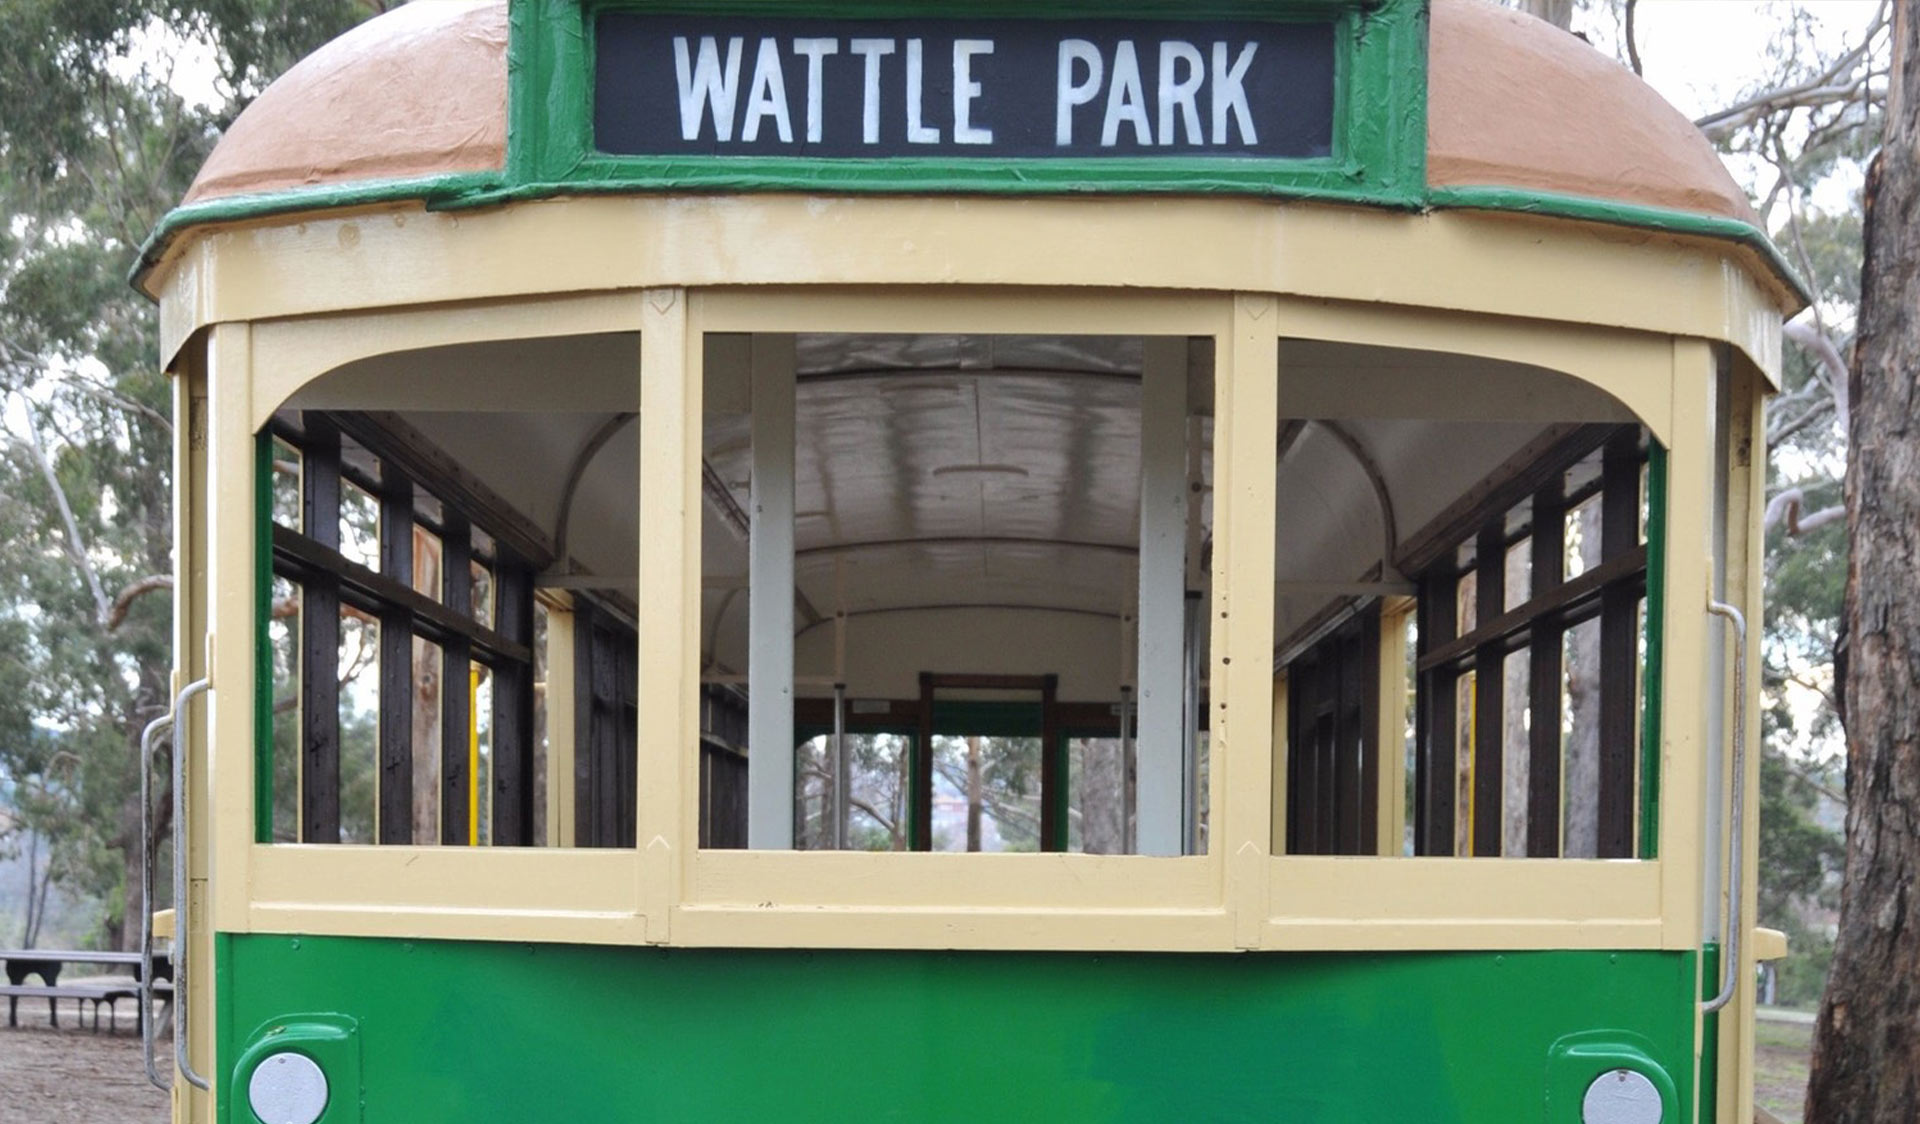 The Wattle Park Tram - a feature of the park.